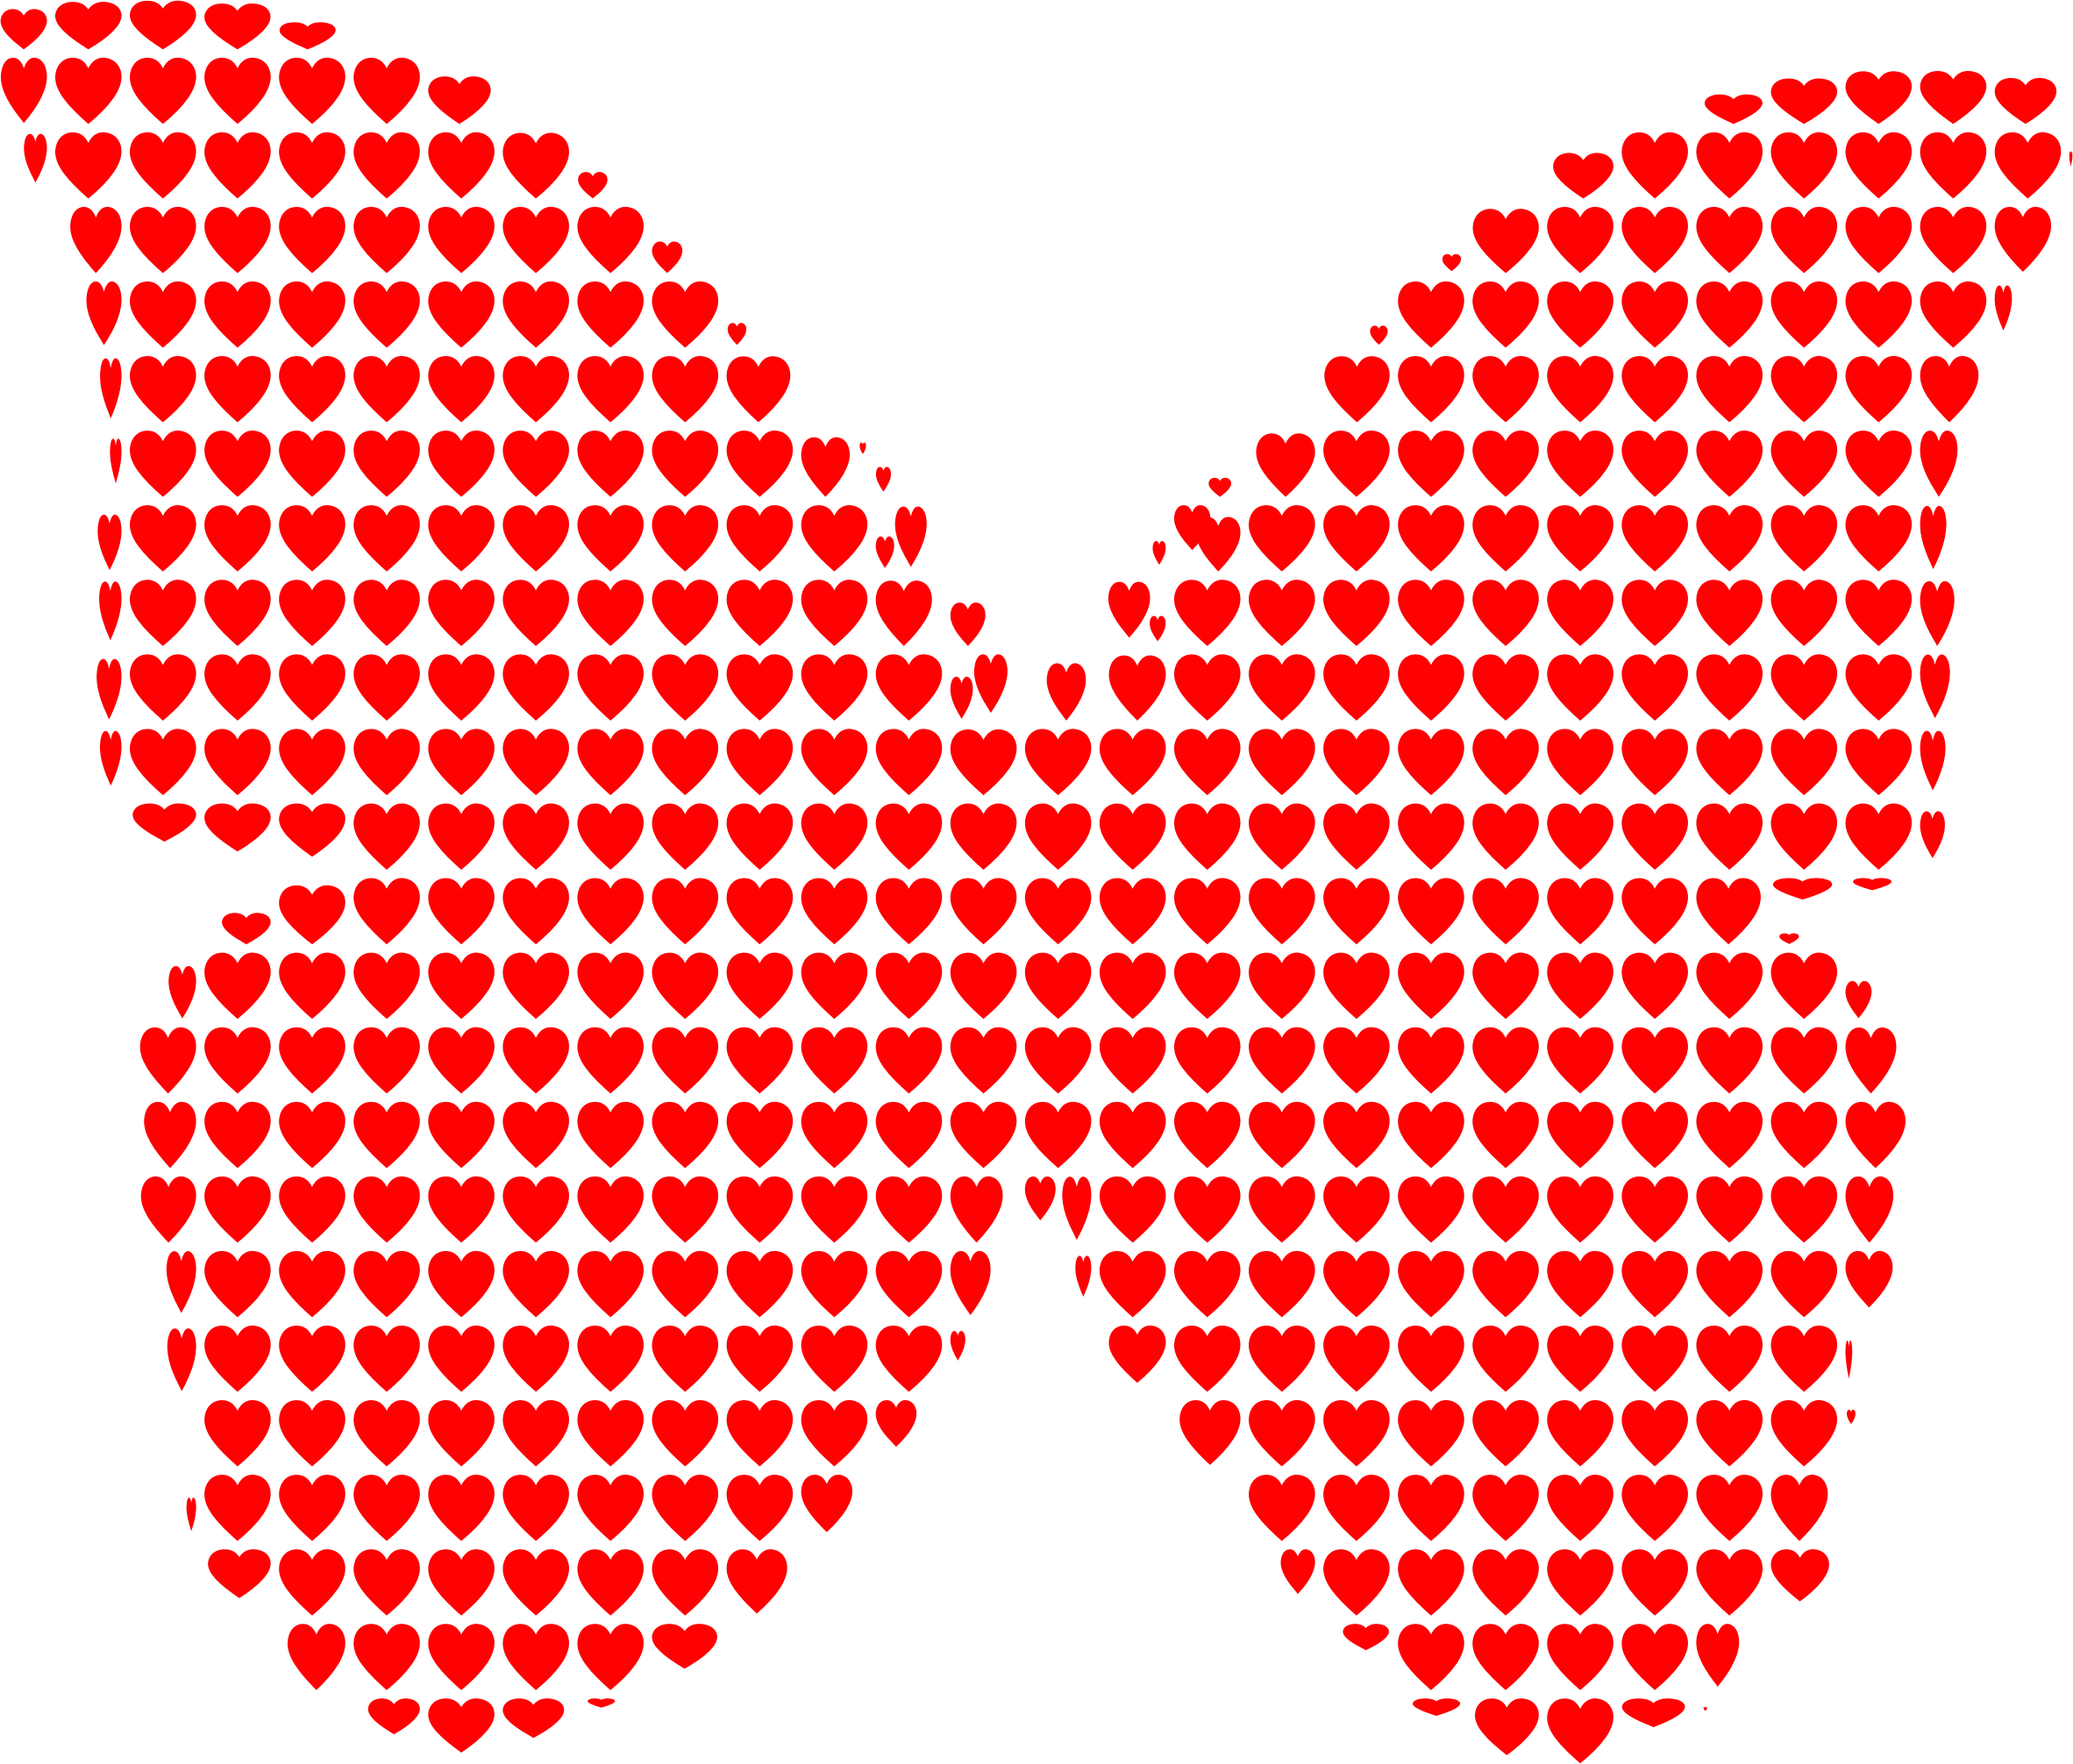 Hearts clipart butterfly. Big image png